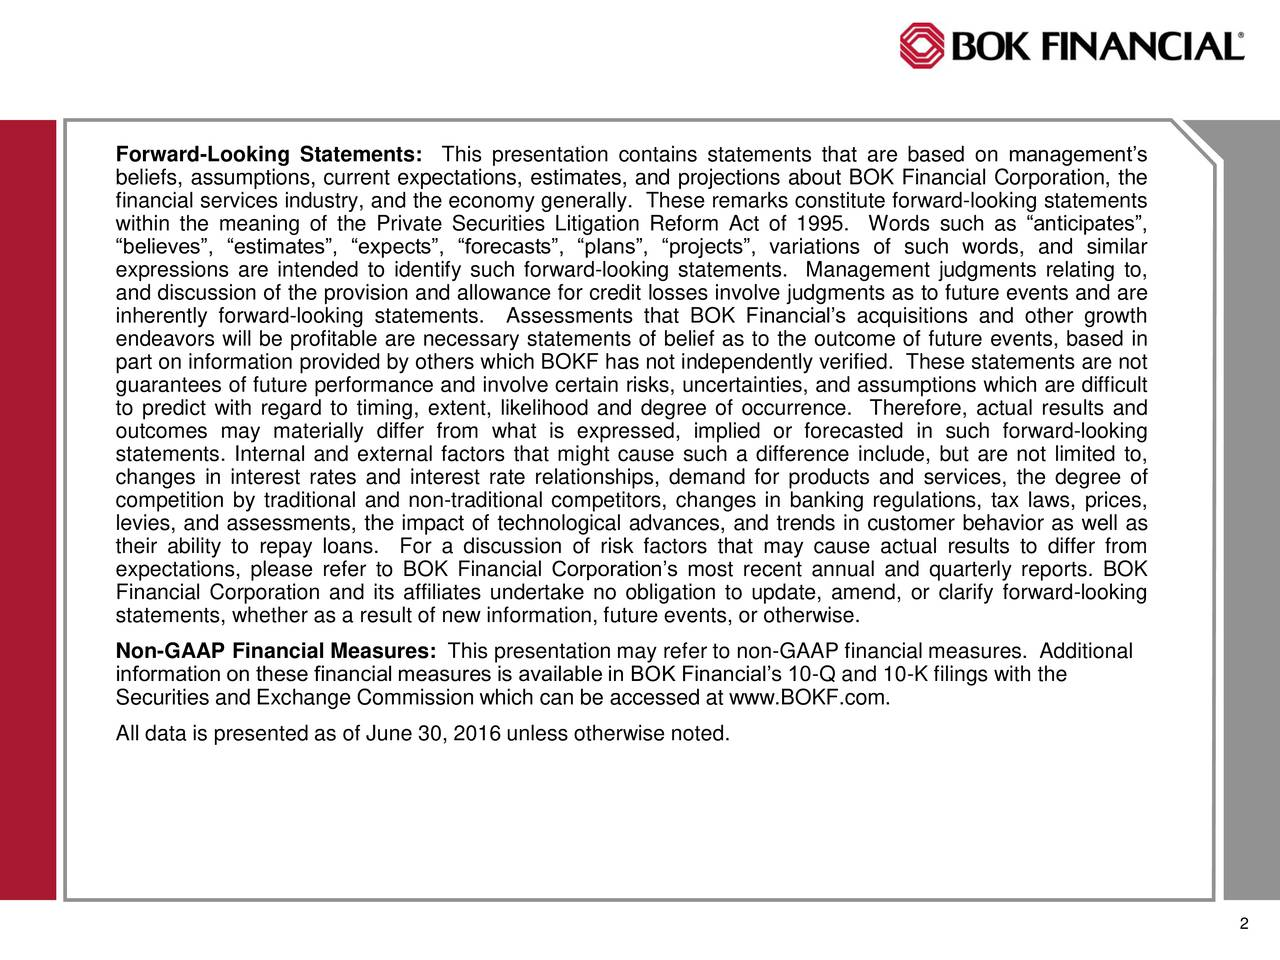 beliefs, assumptions, current expectations, estimates, and projections about BOK Financial Corporation, the financial services industry, and the economy generally. These remarks constitute forward-looking statements within the meaning of the Private Securities Litigation Reform Act of 1995. Words such as anticipates, believes, estimates, expects, forecasts, plans, projects, variations of such words, and similar expressions are intended to identify such forward-looking statements. Management judgments relating to, and discussion of the provision and allowance for credit losses involve judgments as to future events and are inherently forward-looking statements. Assessments that BOK Financials acquisitions and other growth endeavors will be profitable are necessary statements of belief as to the outcome of future events, based in part on information provided by others which BOKF has not independently verified. These statements are not guarantees of future performance and involve certain risks, uncertainties, and assumptions which are difficult to predict with regard to timing, extent, likelihood and degree of occurrence. Therefore, actual results and outcomes may materially differ from what is expressed, implied or forecasted in such forward-looking statements. Internal and external factors that might cause such a difference include, but are not limited to, changes in interest rates and interest rate relationships, demand for products and services, the degree of competition by traditional and non-traditional competitors, changes in banking regulations, tax laws, prices, levies, and assessments, the impact of technological advances, and trends in customer behavior as well as their ability to repay loans. For a discussion of risk factors that may cause actual results to differ from expectations, please refer to BOK Financial Corporations most recent annual and quarterly reports. BOK Financial Corporation and its affiliates undertake no obligation to update, amend, or cla